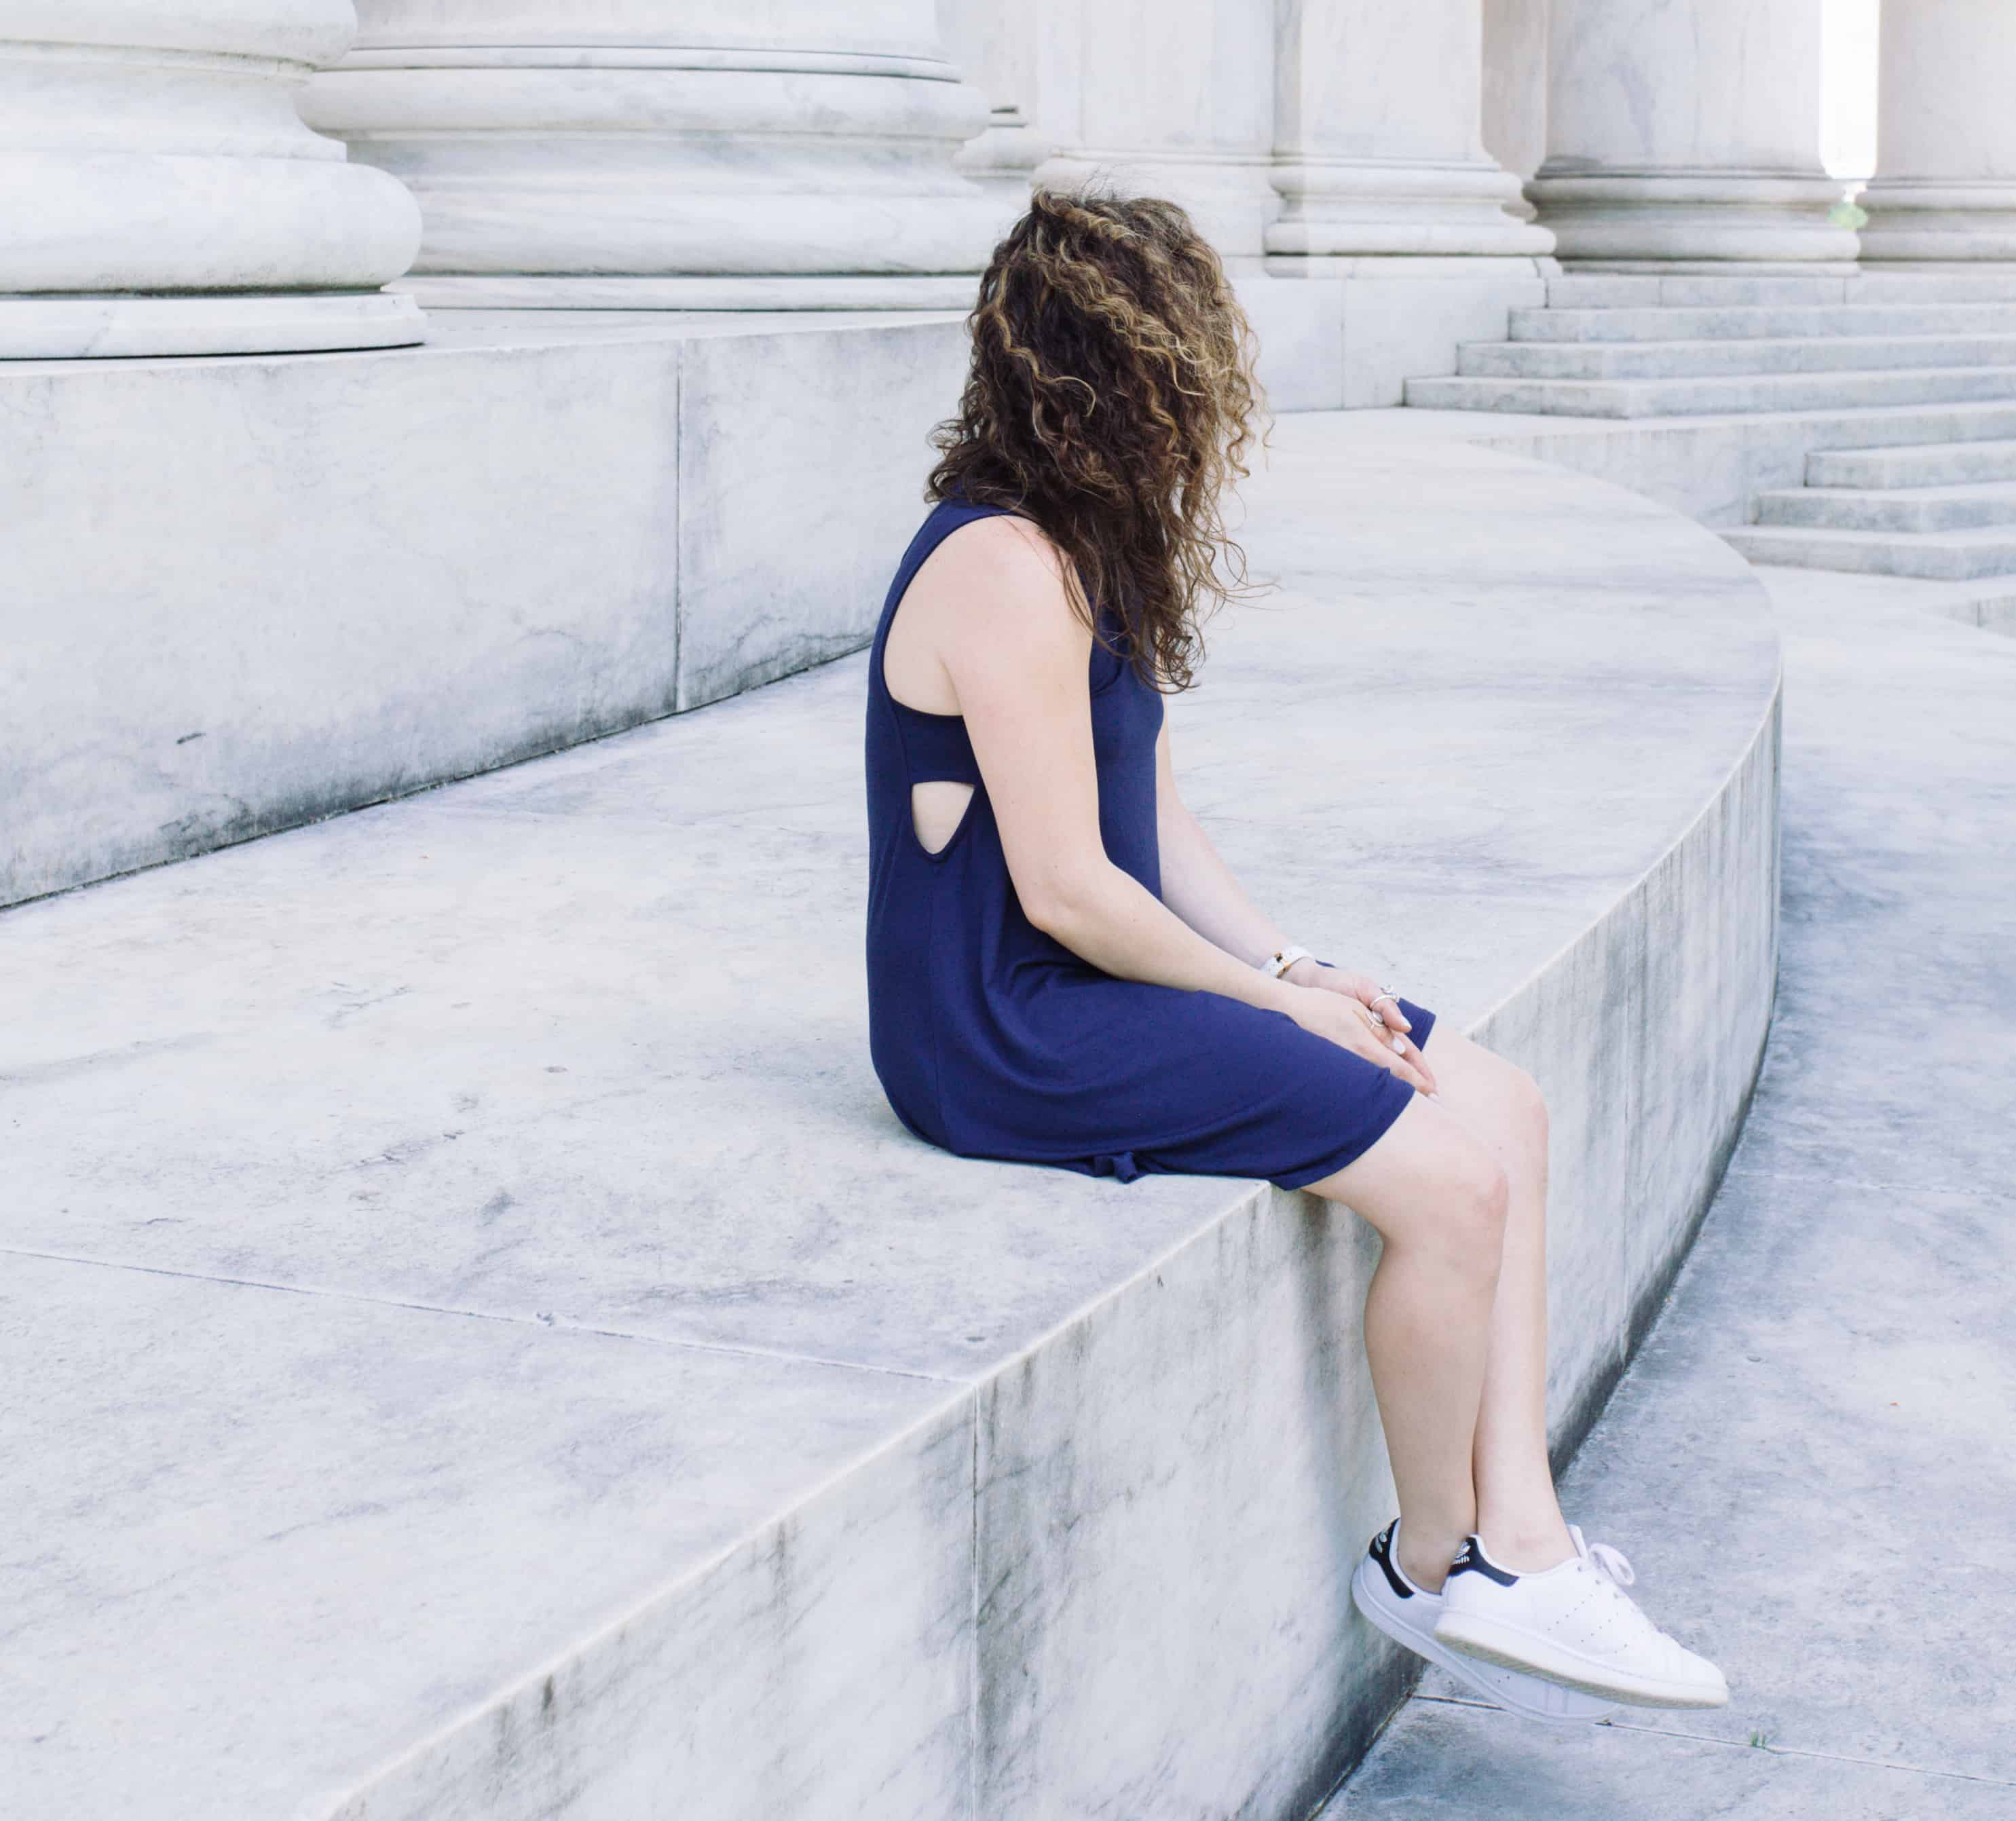 Summer casual: navy dress and white Adidas sneakers